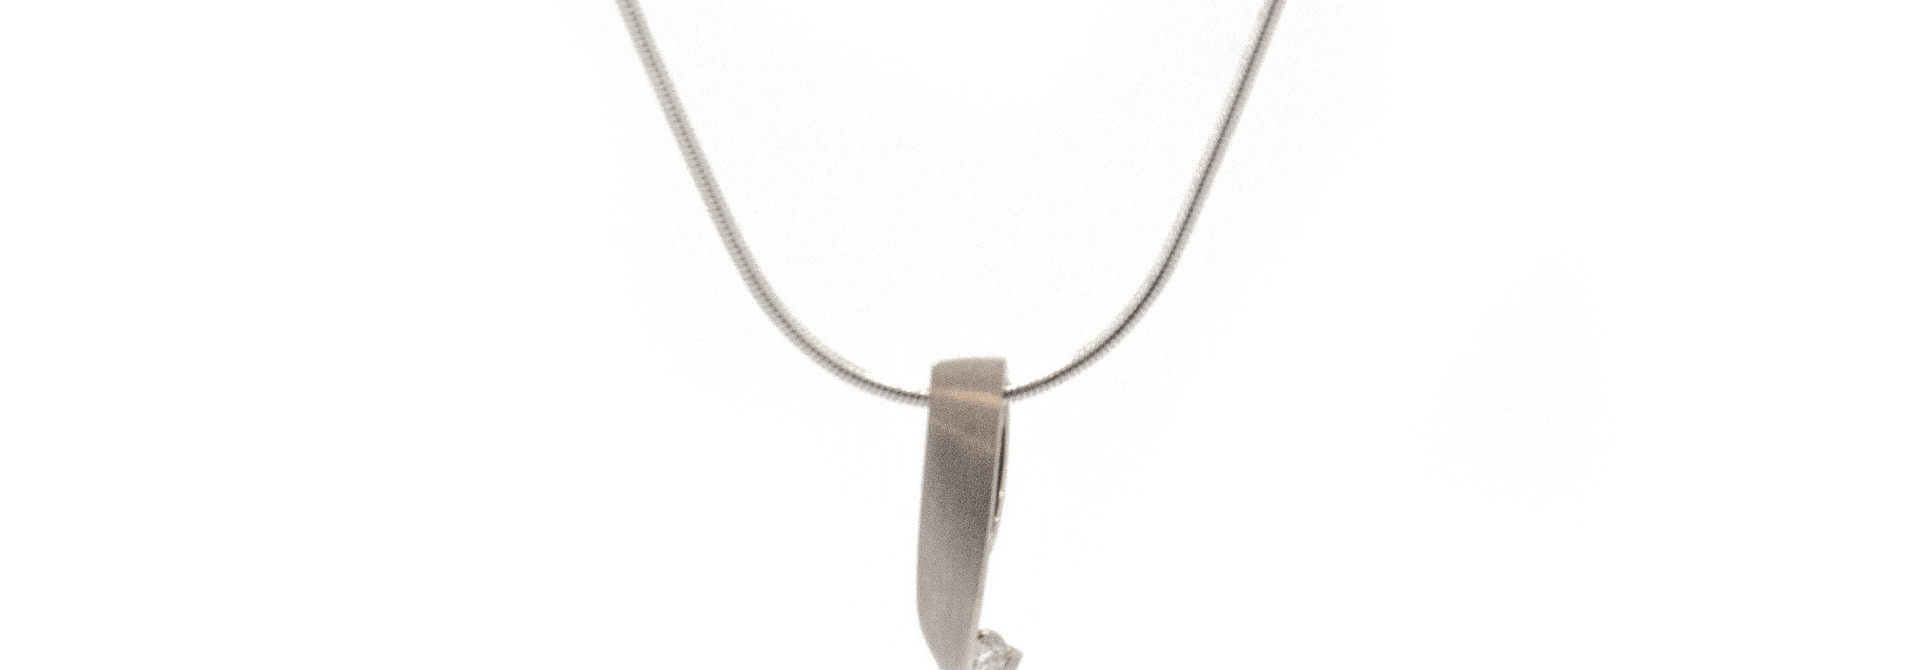 14k White Gold Pendant excl. Coll